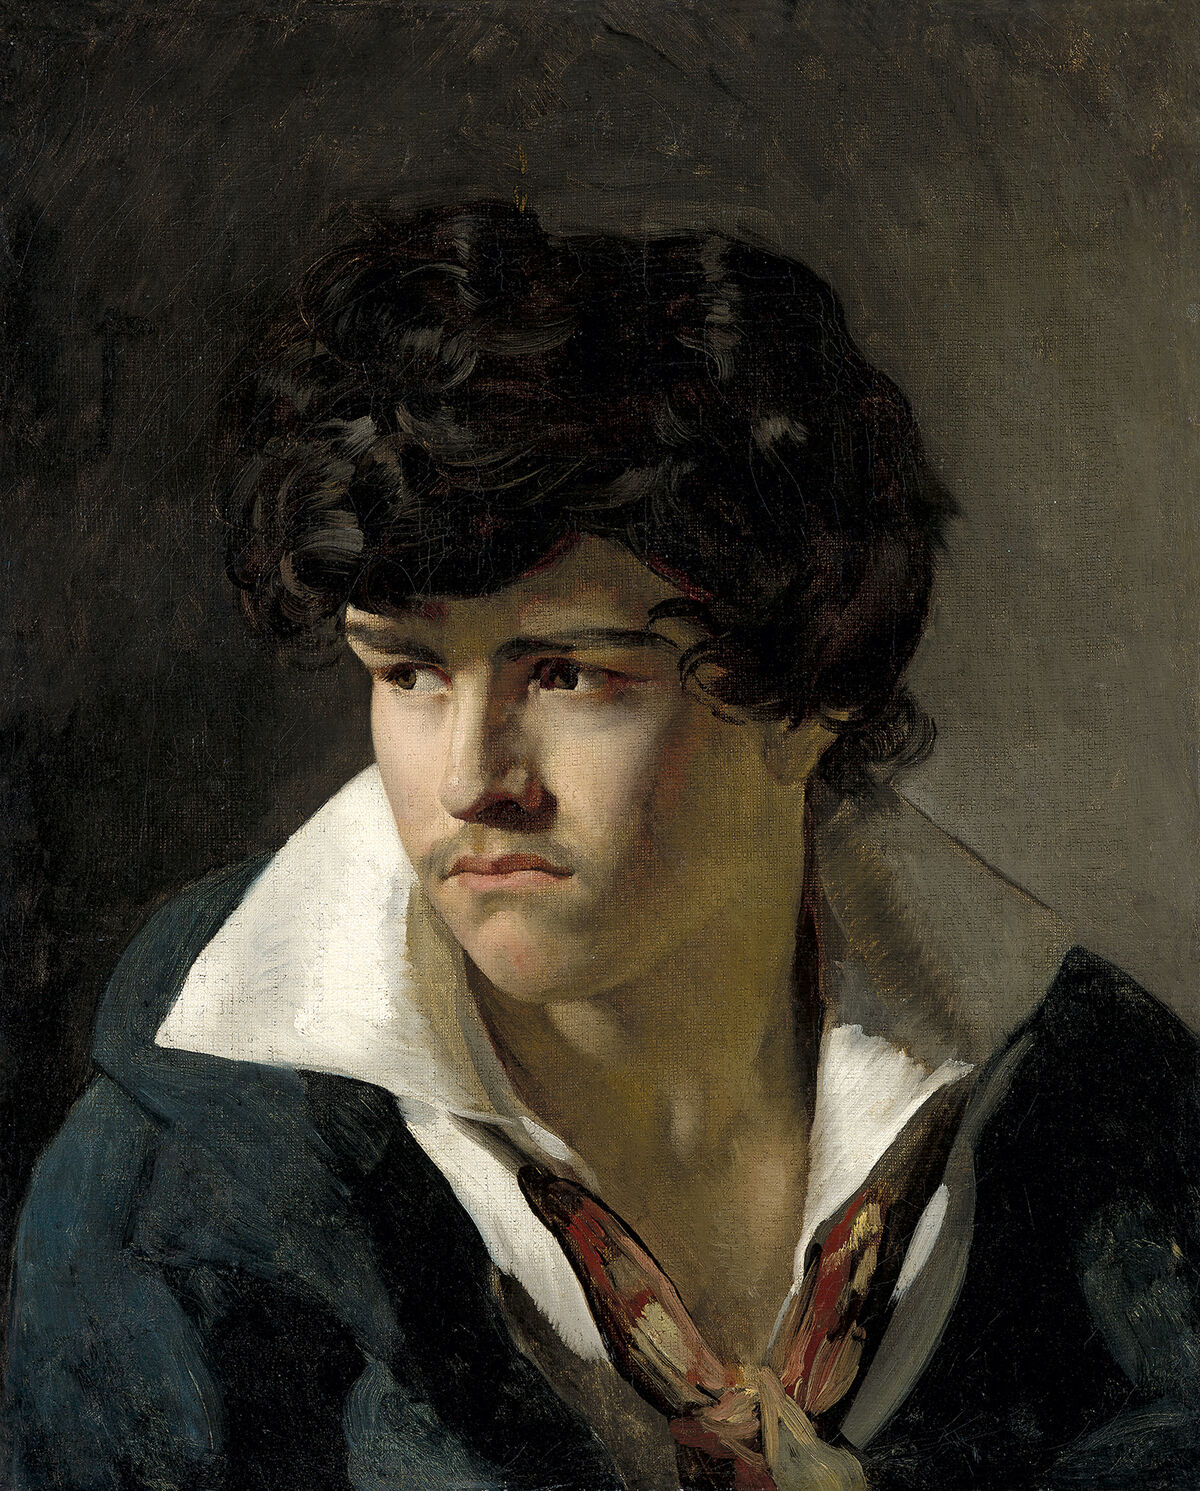 Théodore Géricault,Portrait of a young man with an open collar, c. 1817. Image courtesy ofJean-Luc Baroni Ltd.